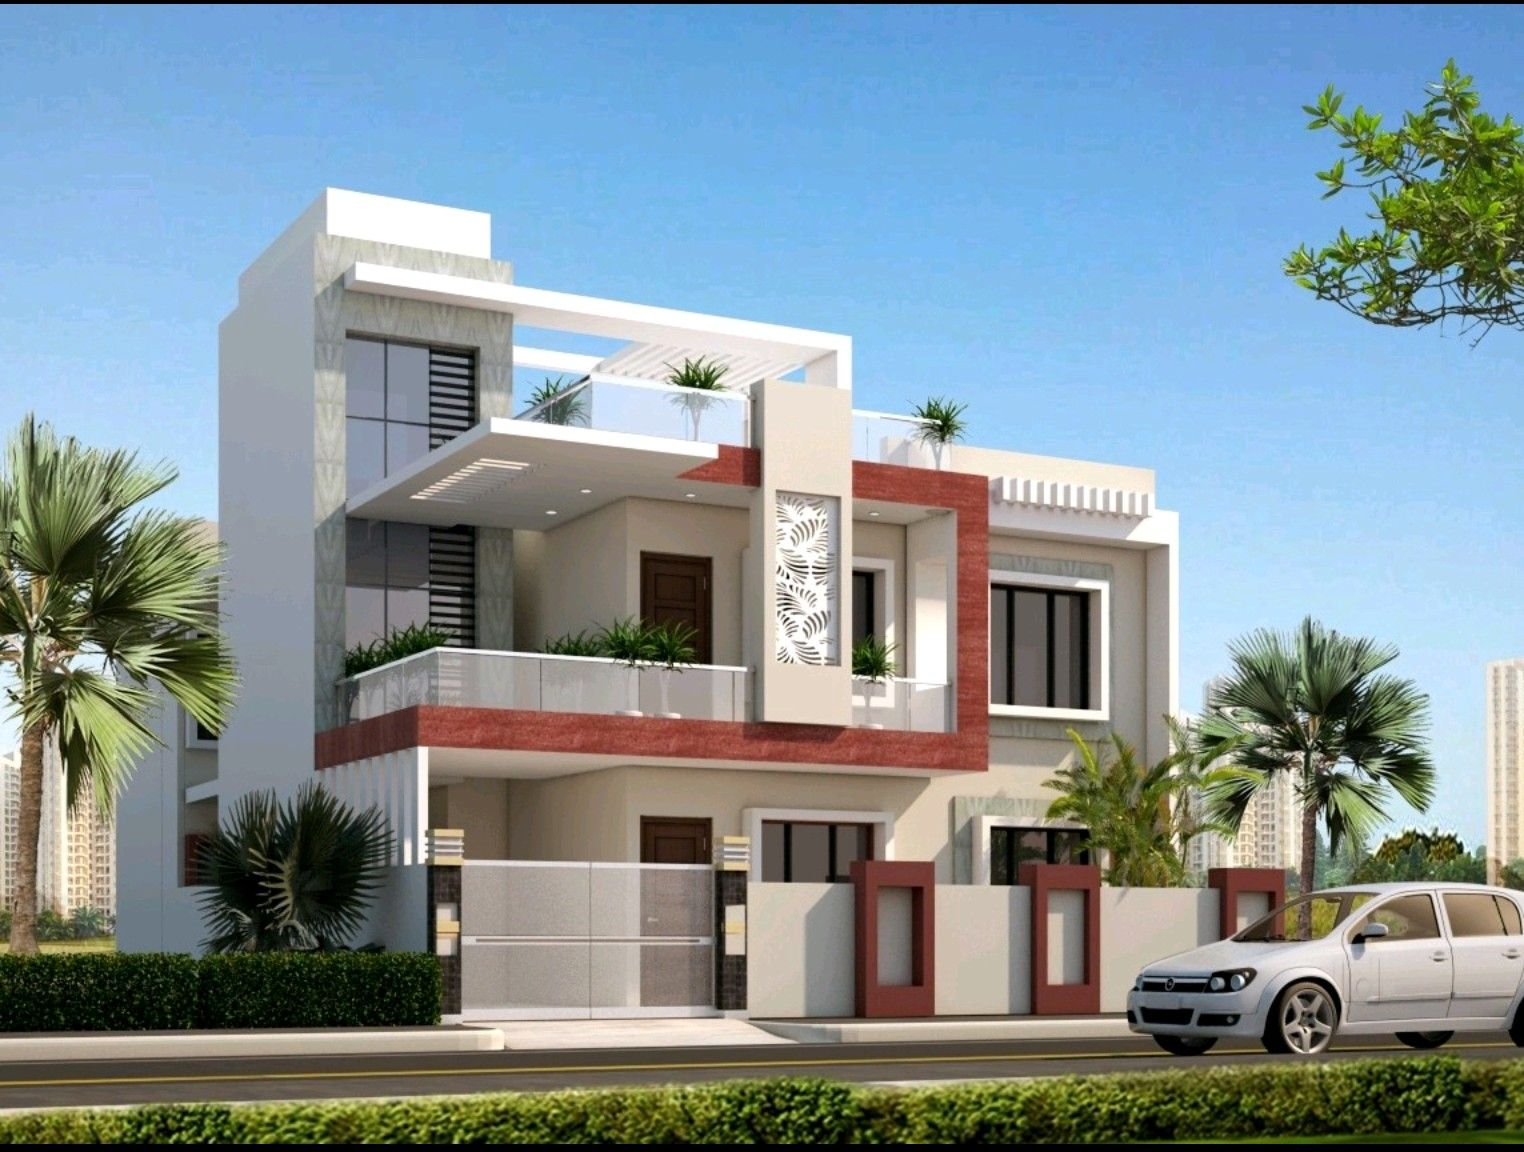 Pin by Mayank Singh on Houses | Duplex house design, House ...